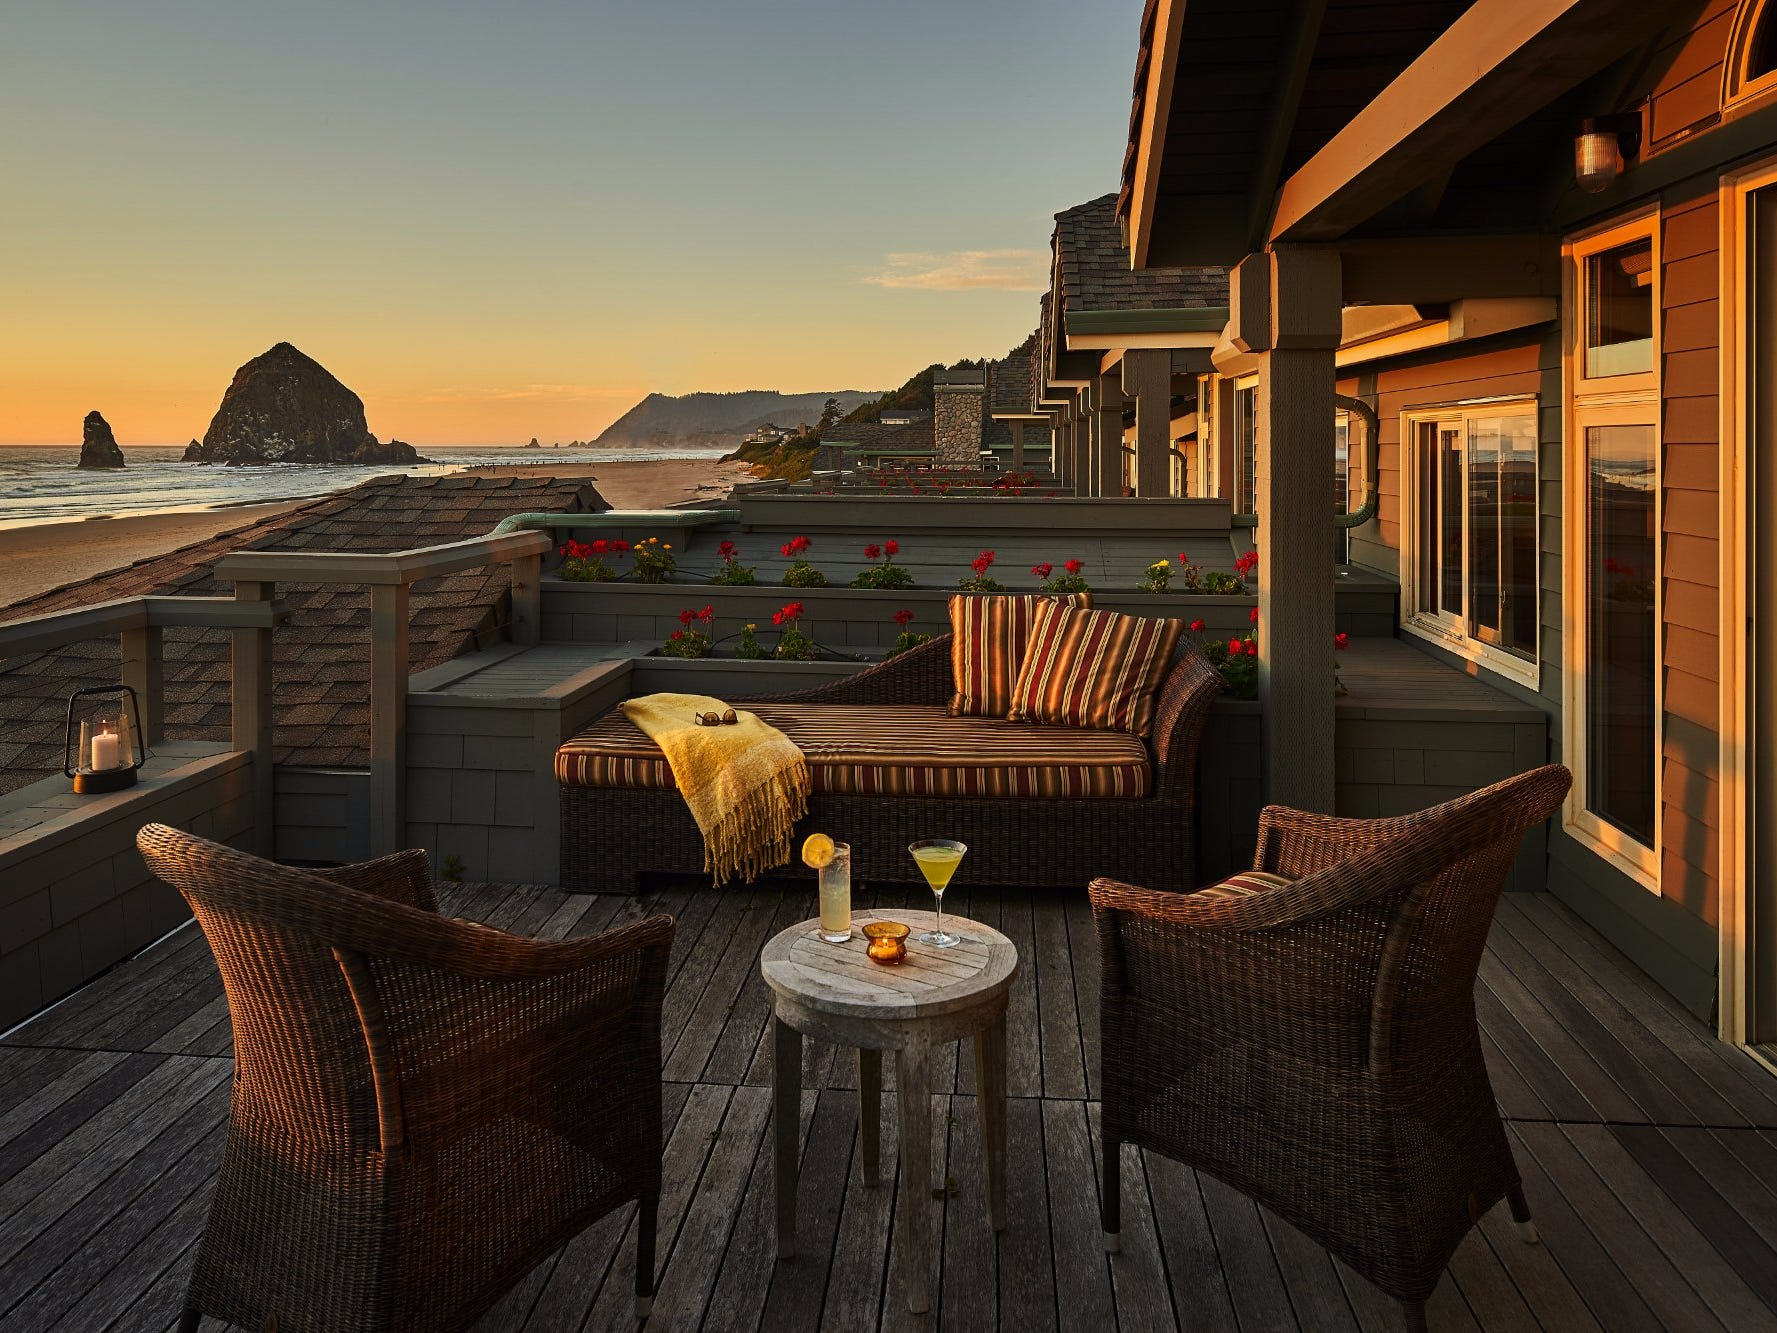 No. 16: Stephanie Inn in Cannon Beach, Oregon.